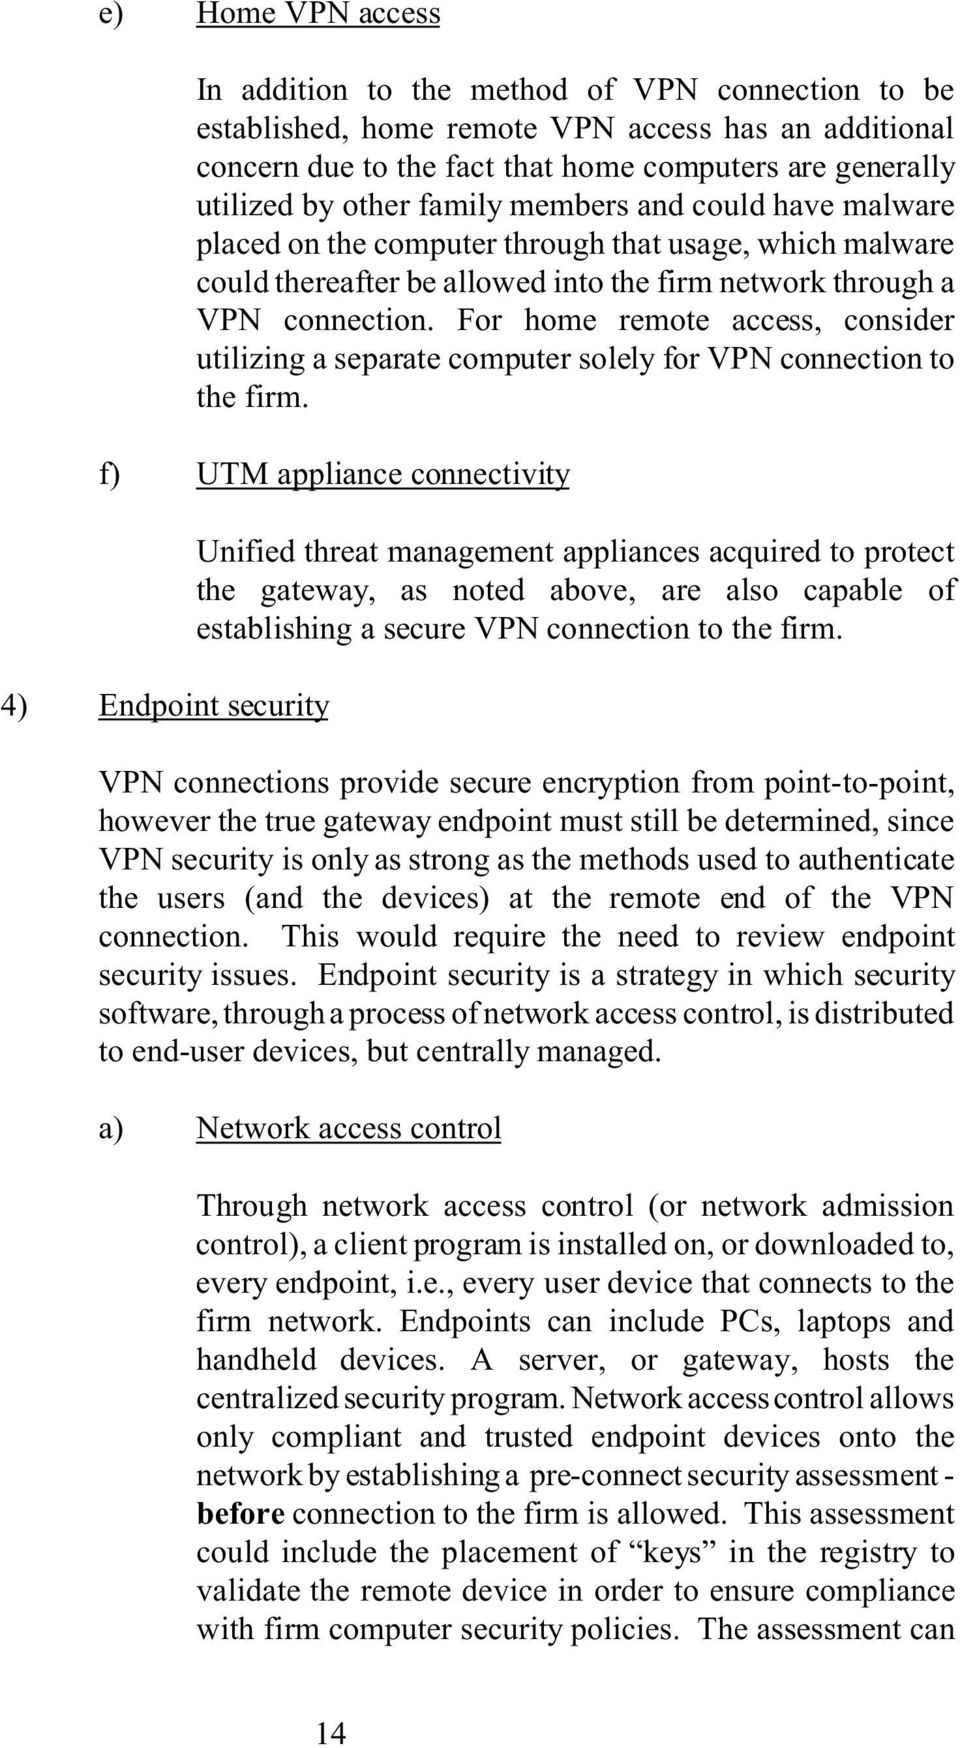 For home remote access, consider utilizing a separate computer solely for VPN connection to the firm.